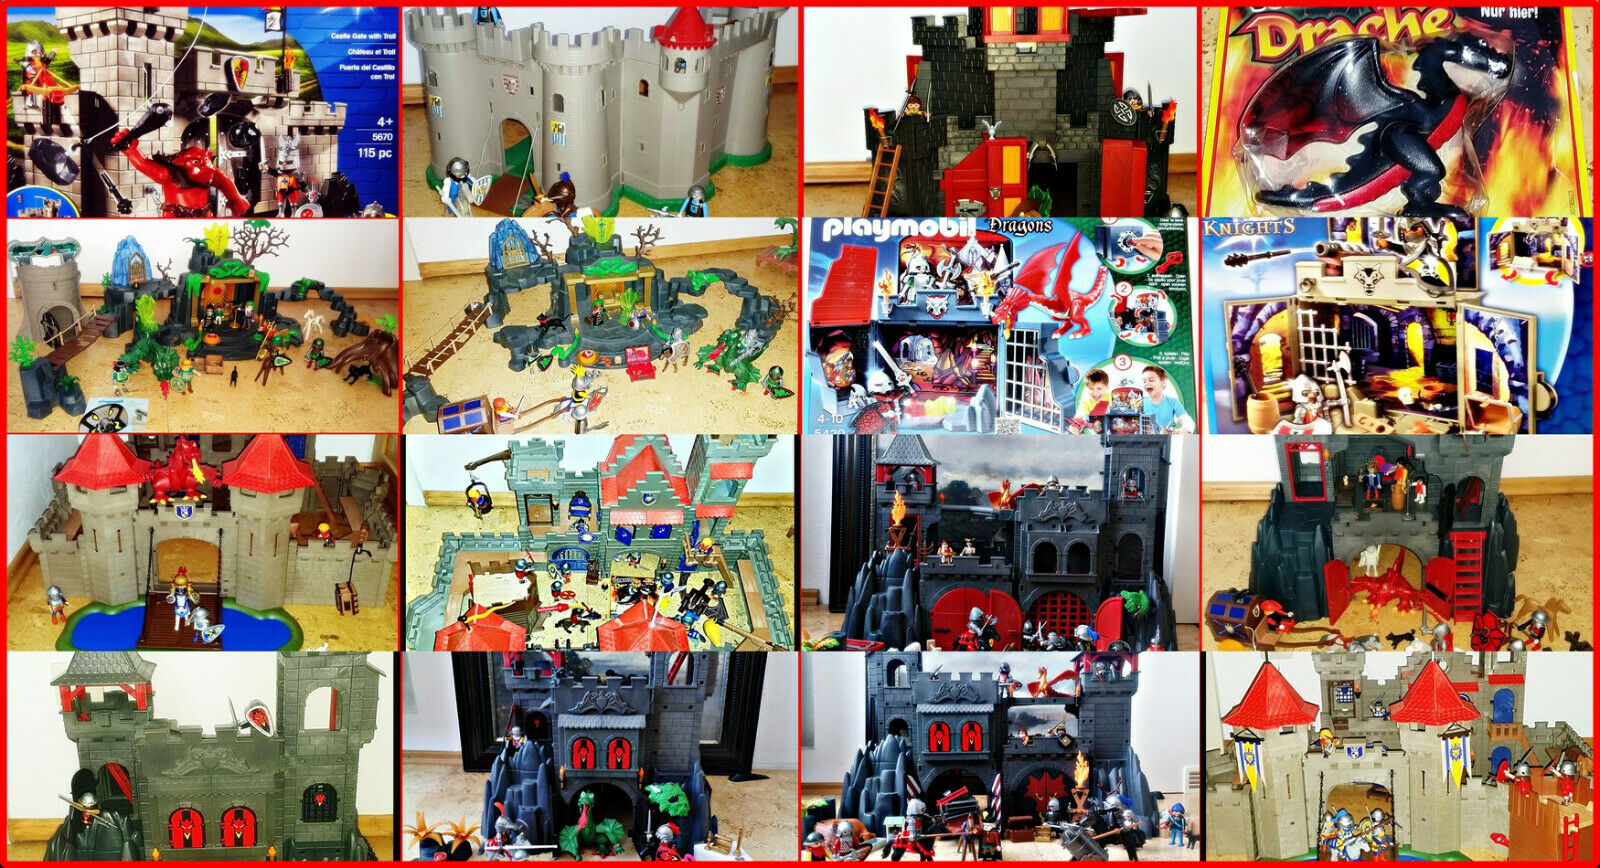 Playmobil dragon chevalier ch teau forteresse 3269 3667 - Chateau chevalier playmobil ...